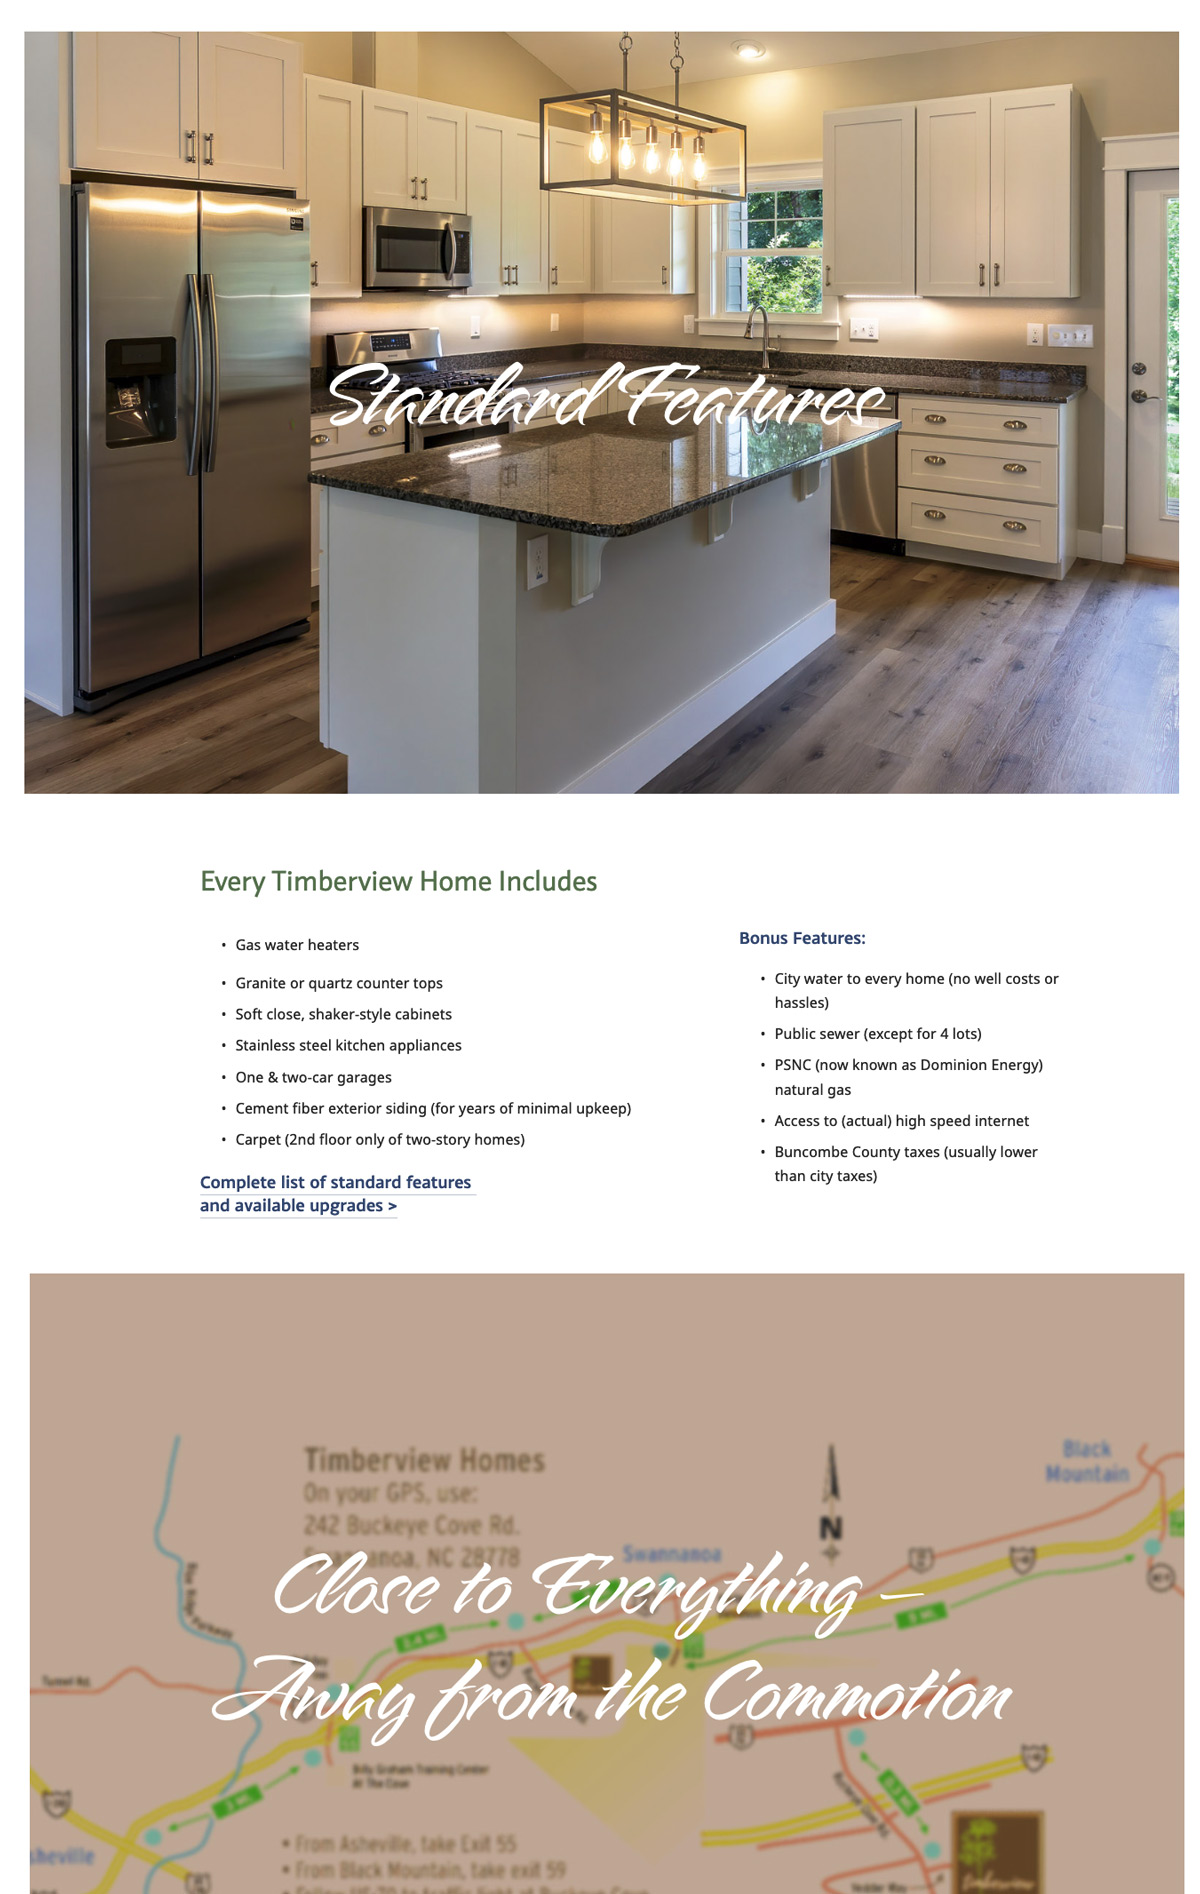 Timberview-Homes-Hom-Pg-2.jpg